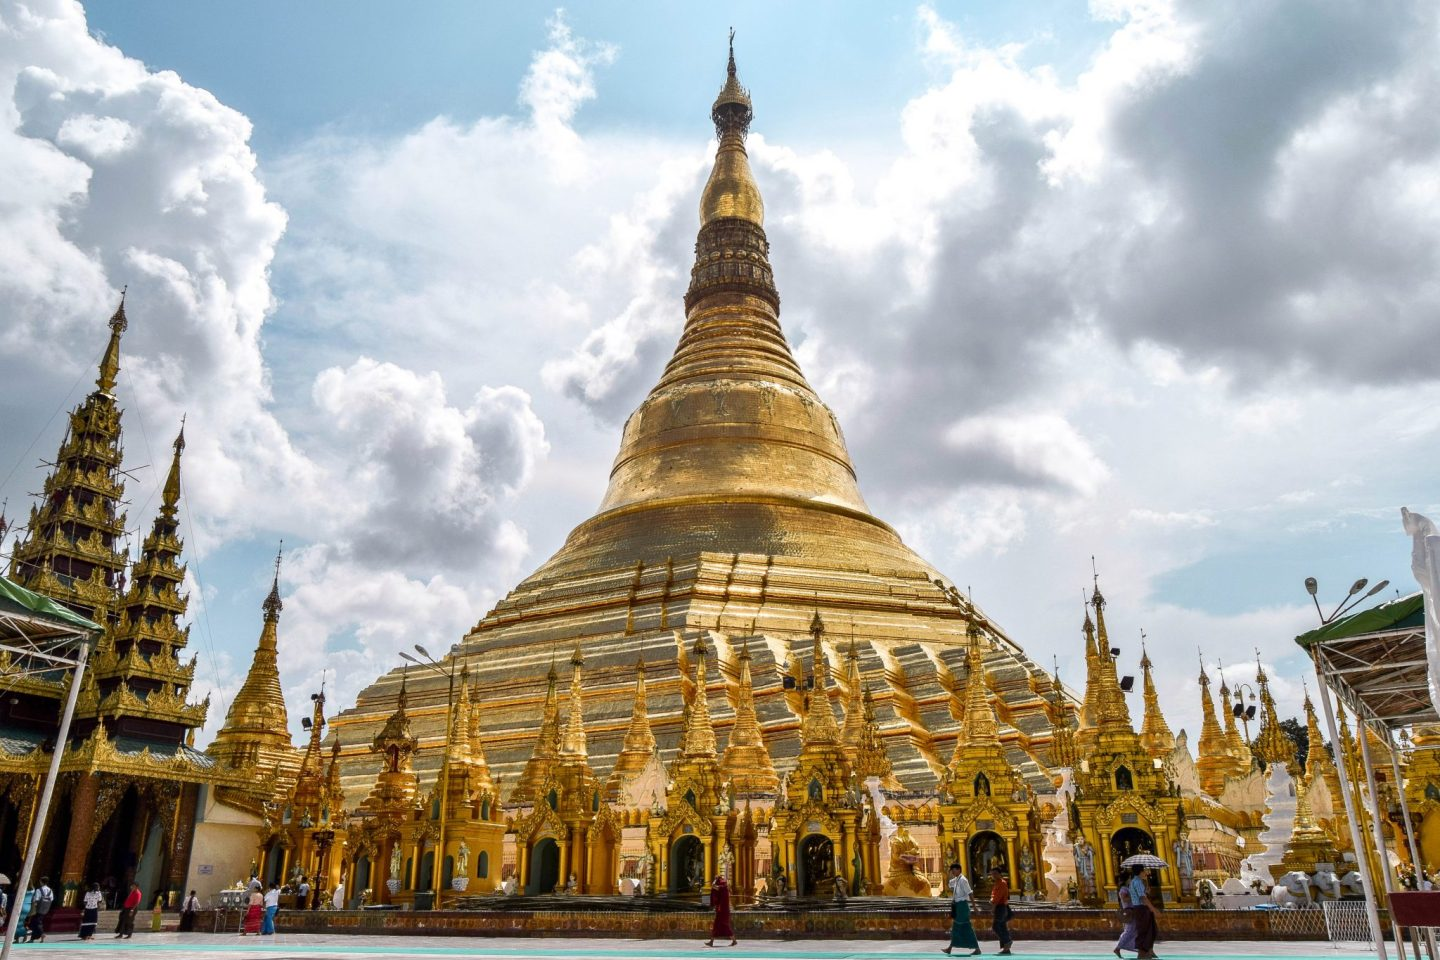 Wanderers & Warriors - Shwedagon Pagoda - Best Things To Do In Yangon Myanmar